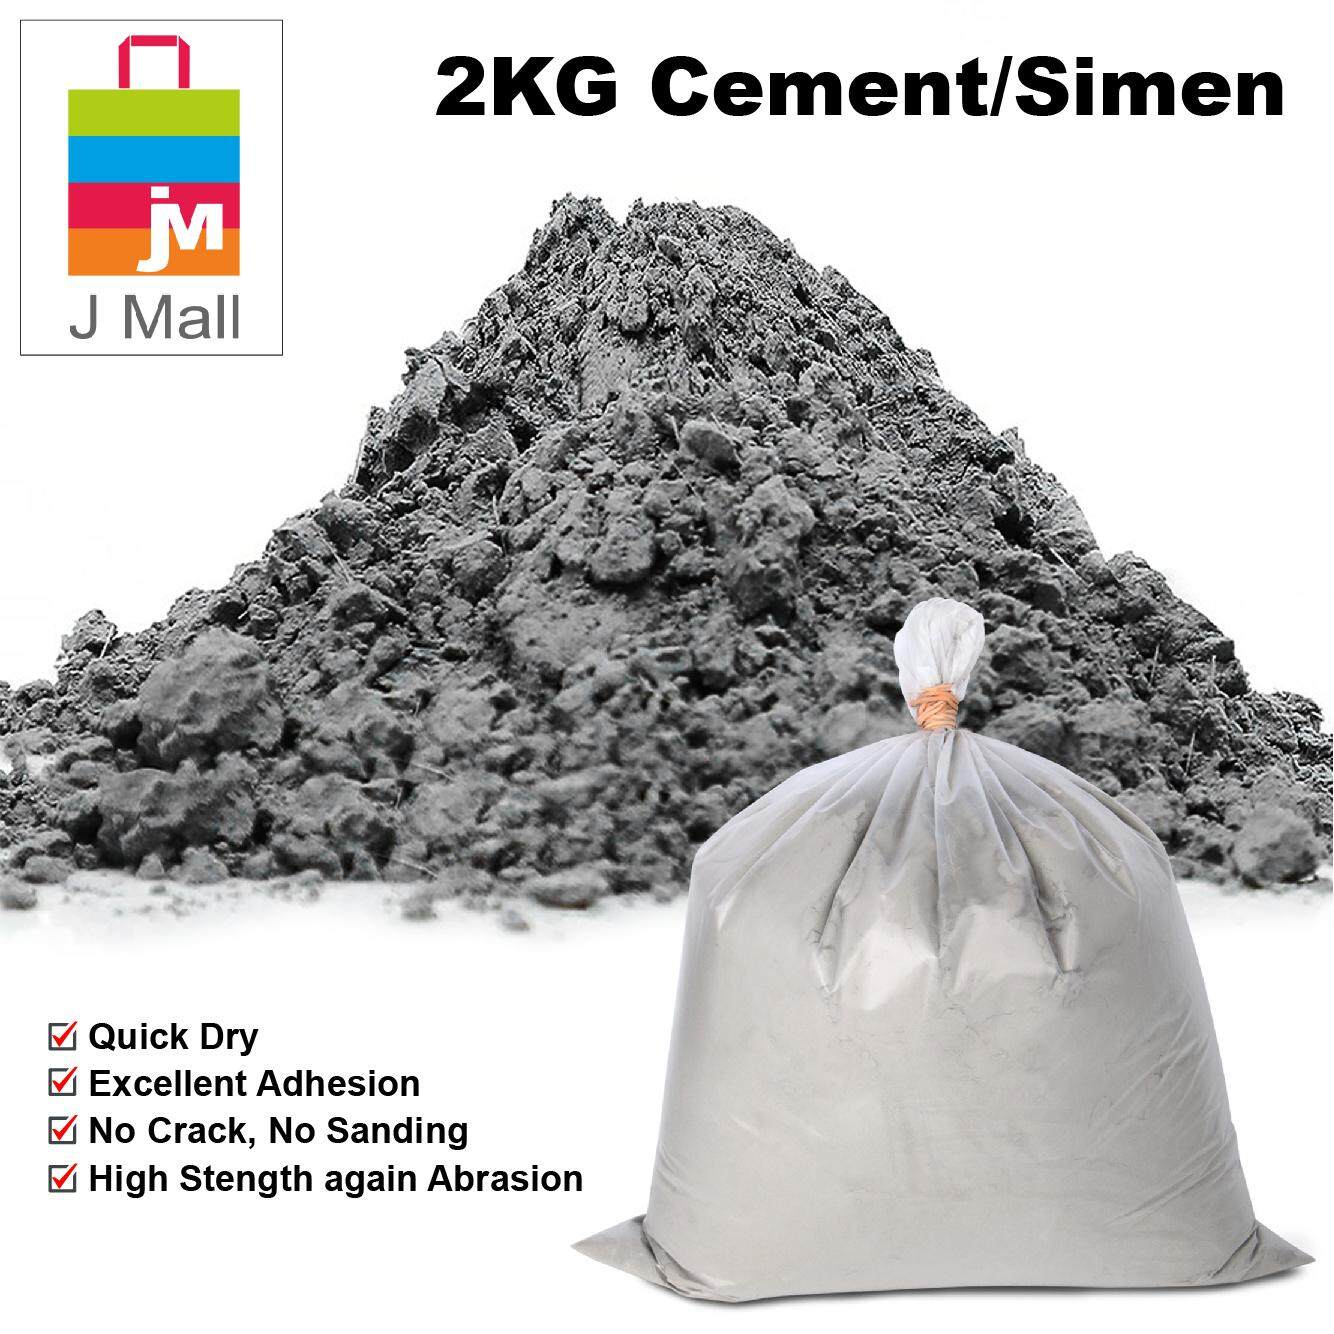 JMALL 2KG Grey Cement / Simen Biasa for Concrete Wall Touch Up DIY